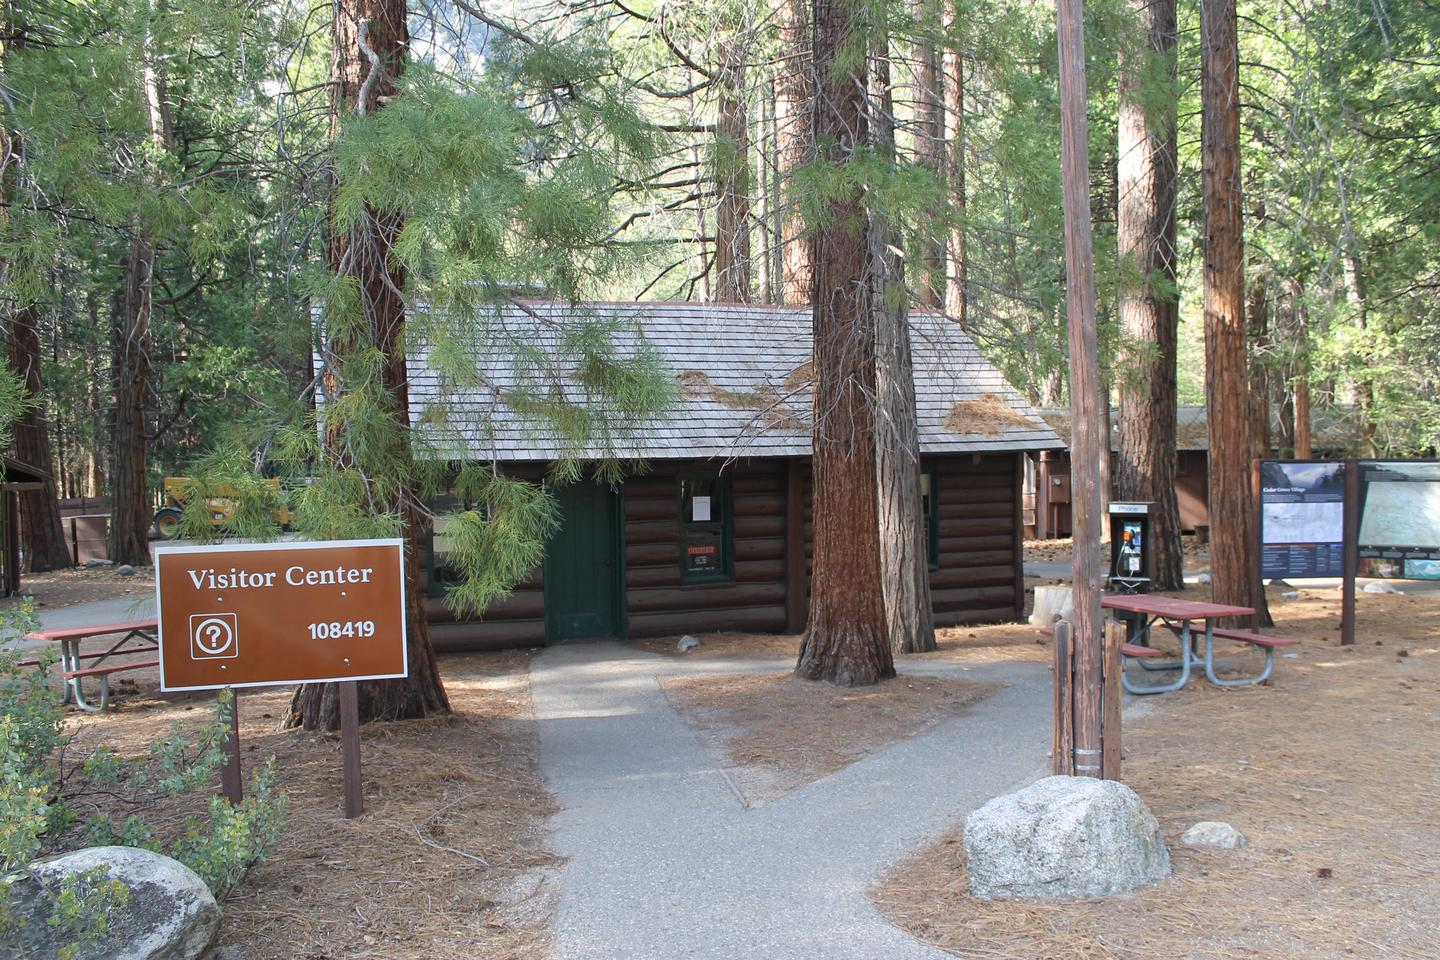 Cedar Grove Visitor CenterAt this quaint log cabin visitor center, you will find exhibits, books, and a ranger available to answer questions.